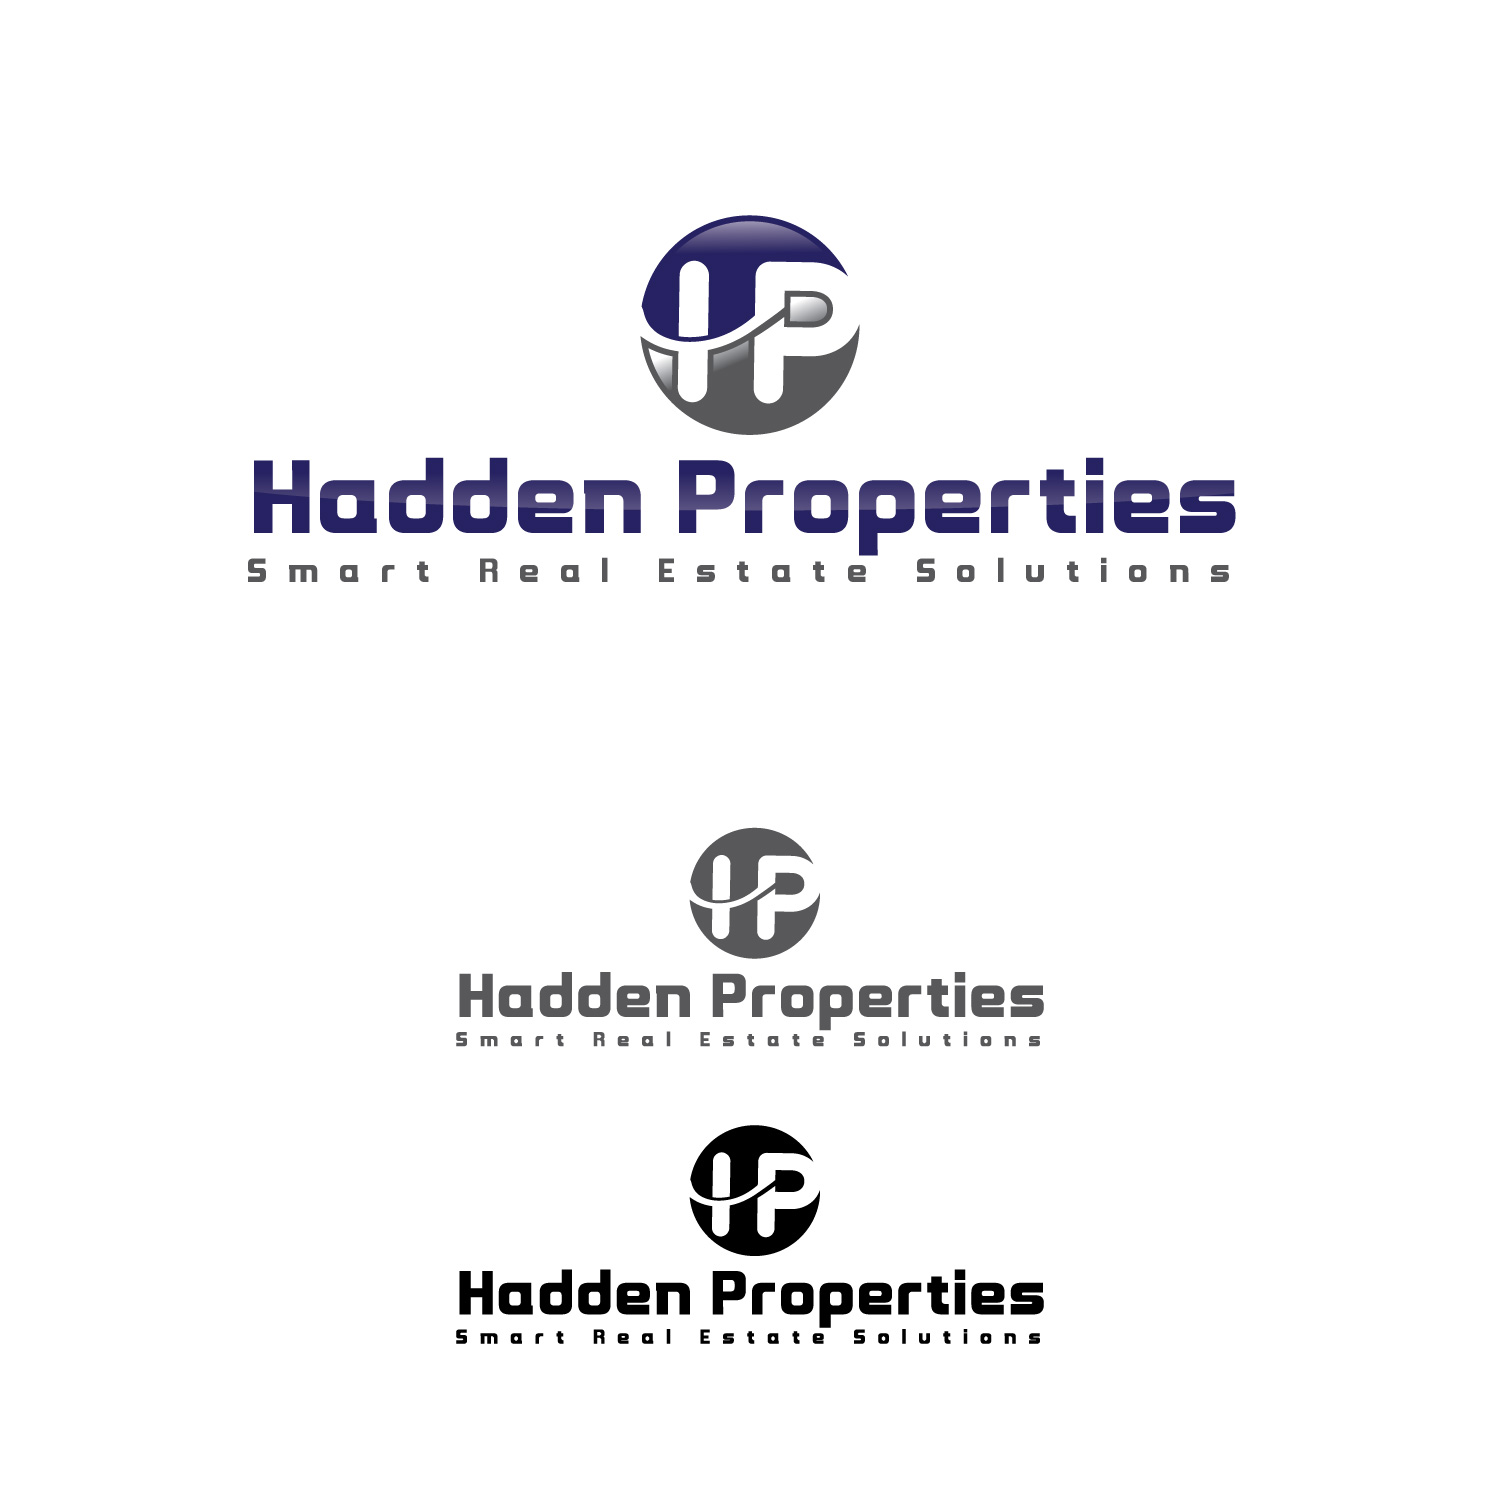 Logo Design by lagalag - Entry No. 39 in the Logo Design Contest Artistic Logo Design for Hadden Properties.